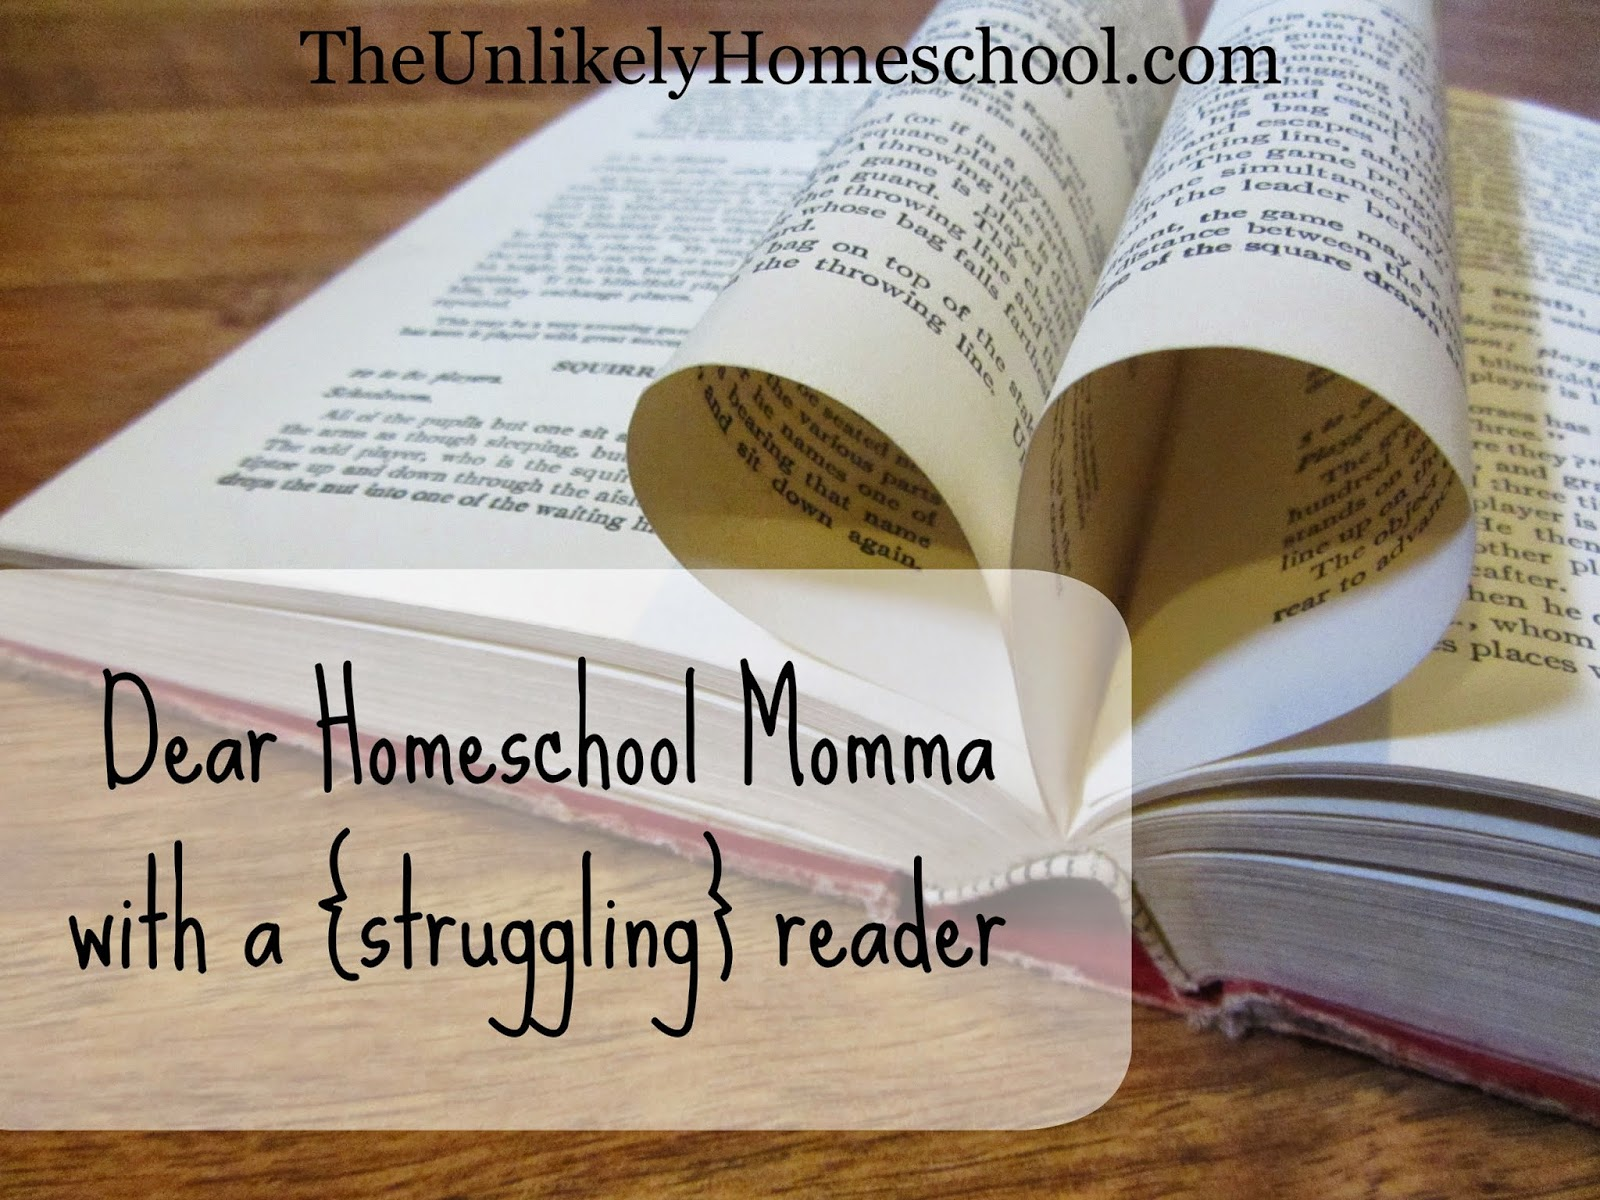 Dear Homeschool Momma with a Struggling Reader {The Unlikely Homeschool}